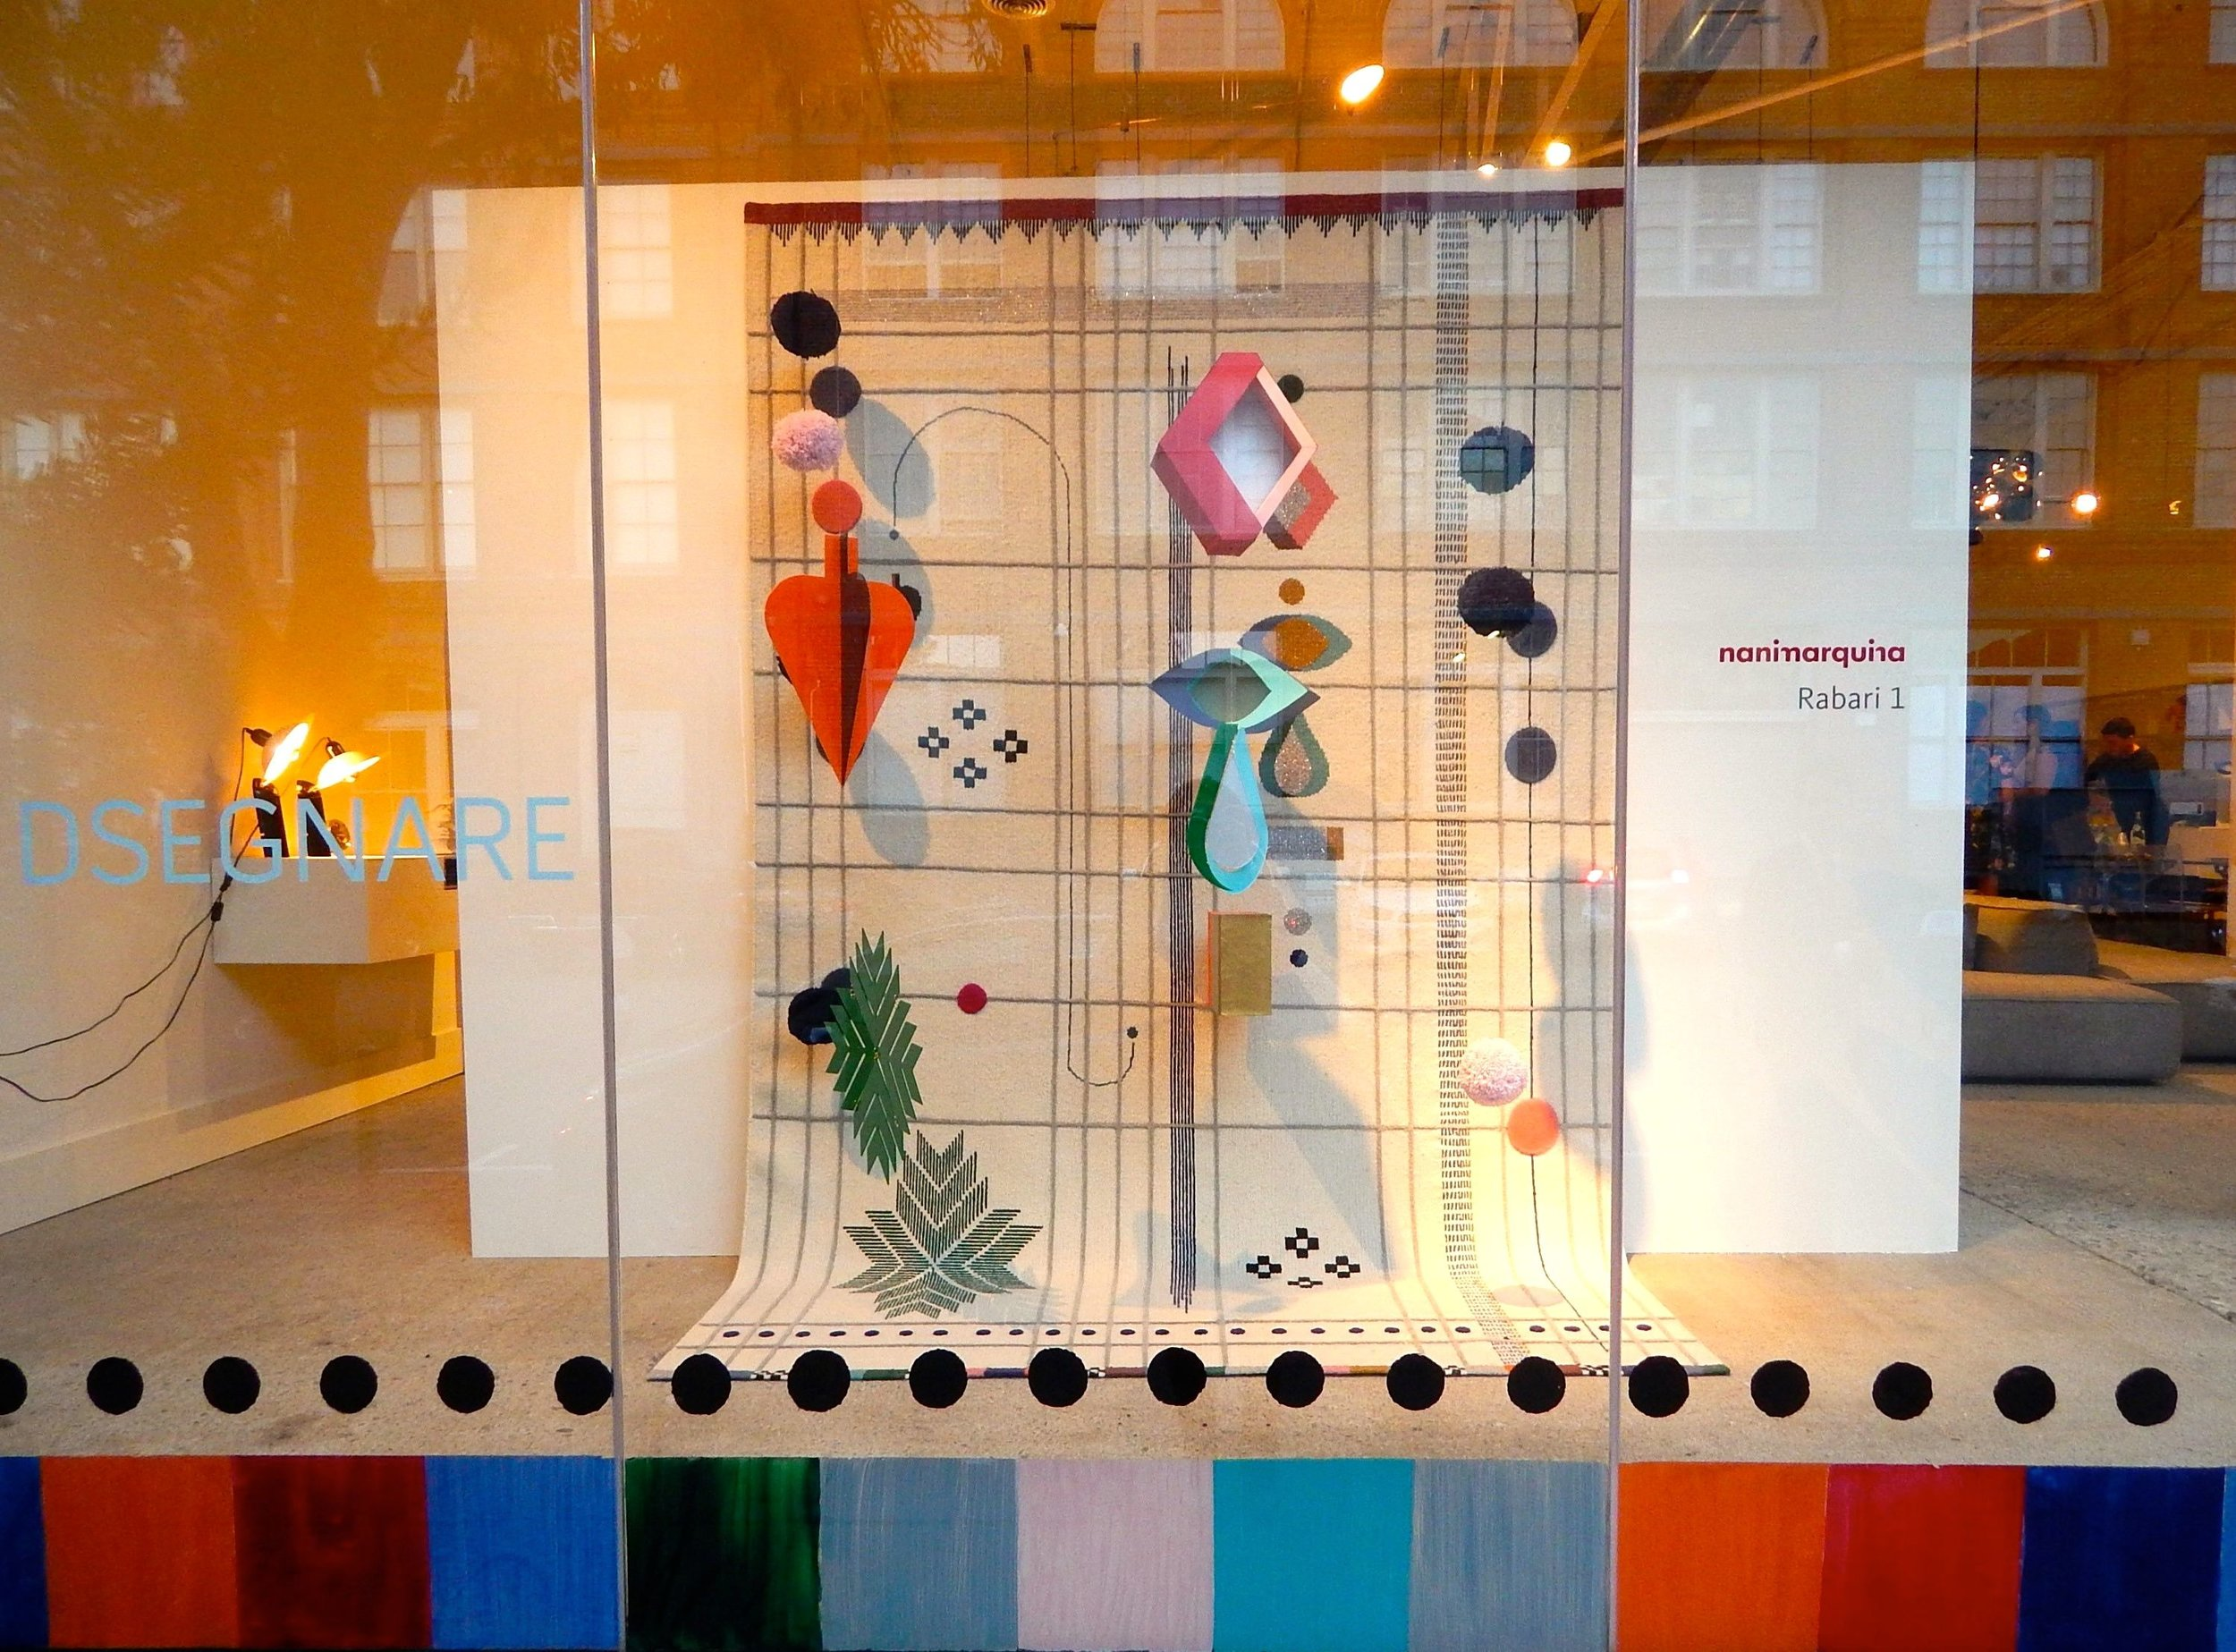 The new DSEGNARE window designed by Kelly Waters and her team.